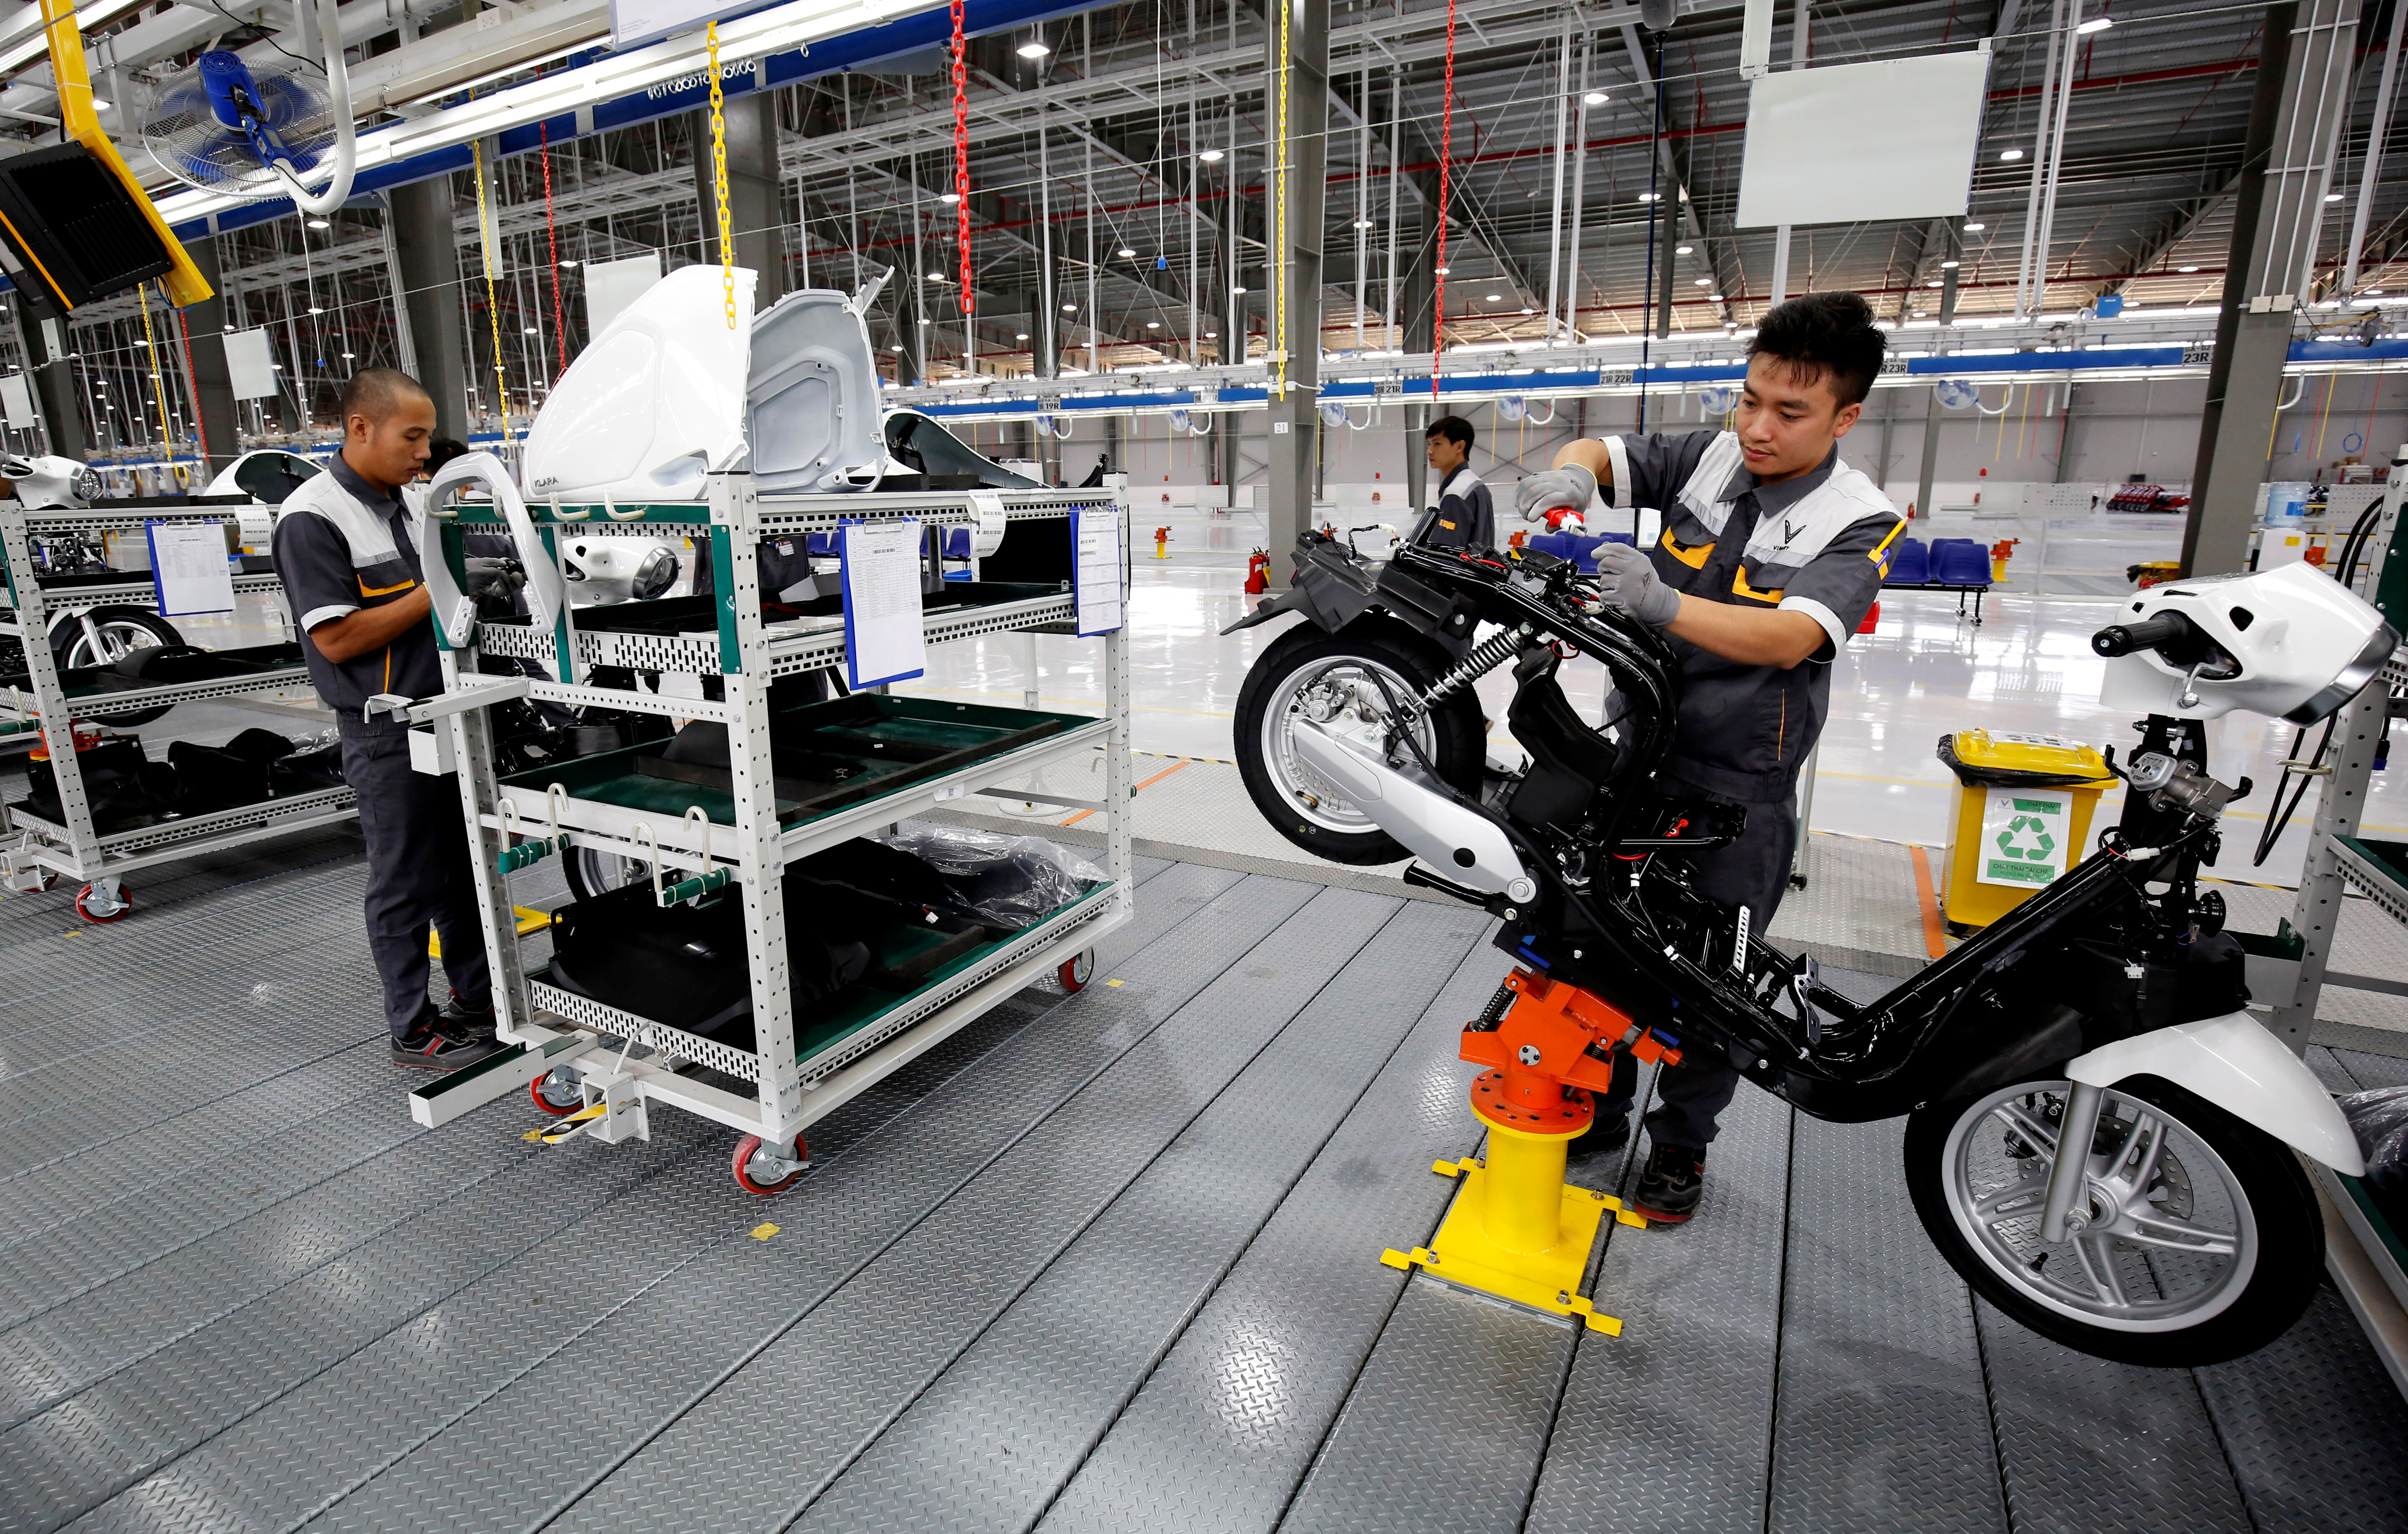 Men work at an e-scooter assembly line of Vinfast Auto and Motorcycle factory in Hai Phong city, Vietnam November 3, 2018. REUTERS/Kham - RC1468580640